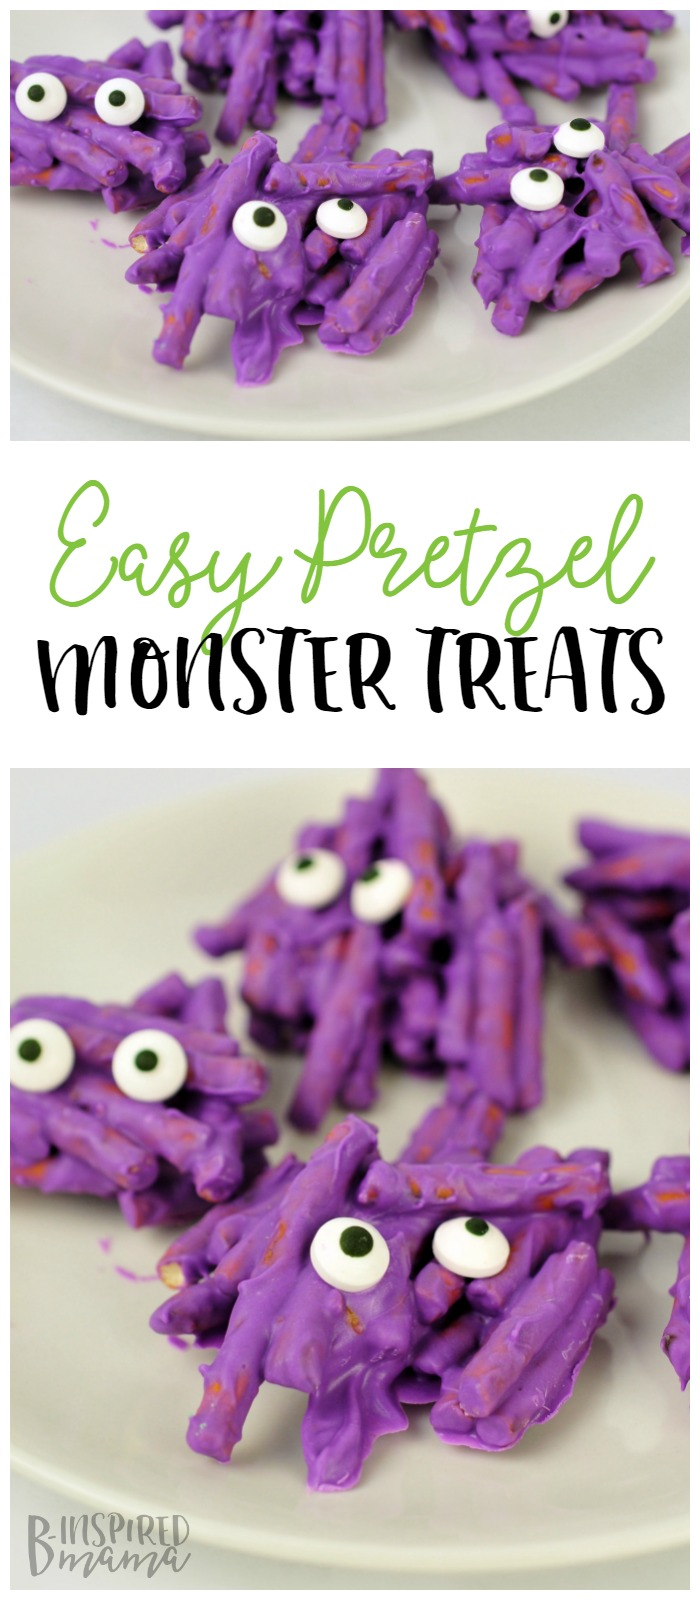 Cute Non-Scary Halloween Monster Treats Recipe